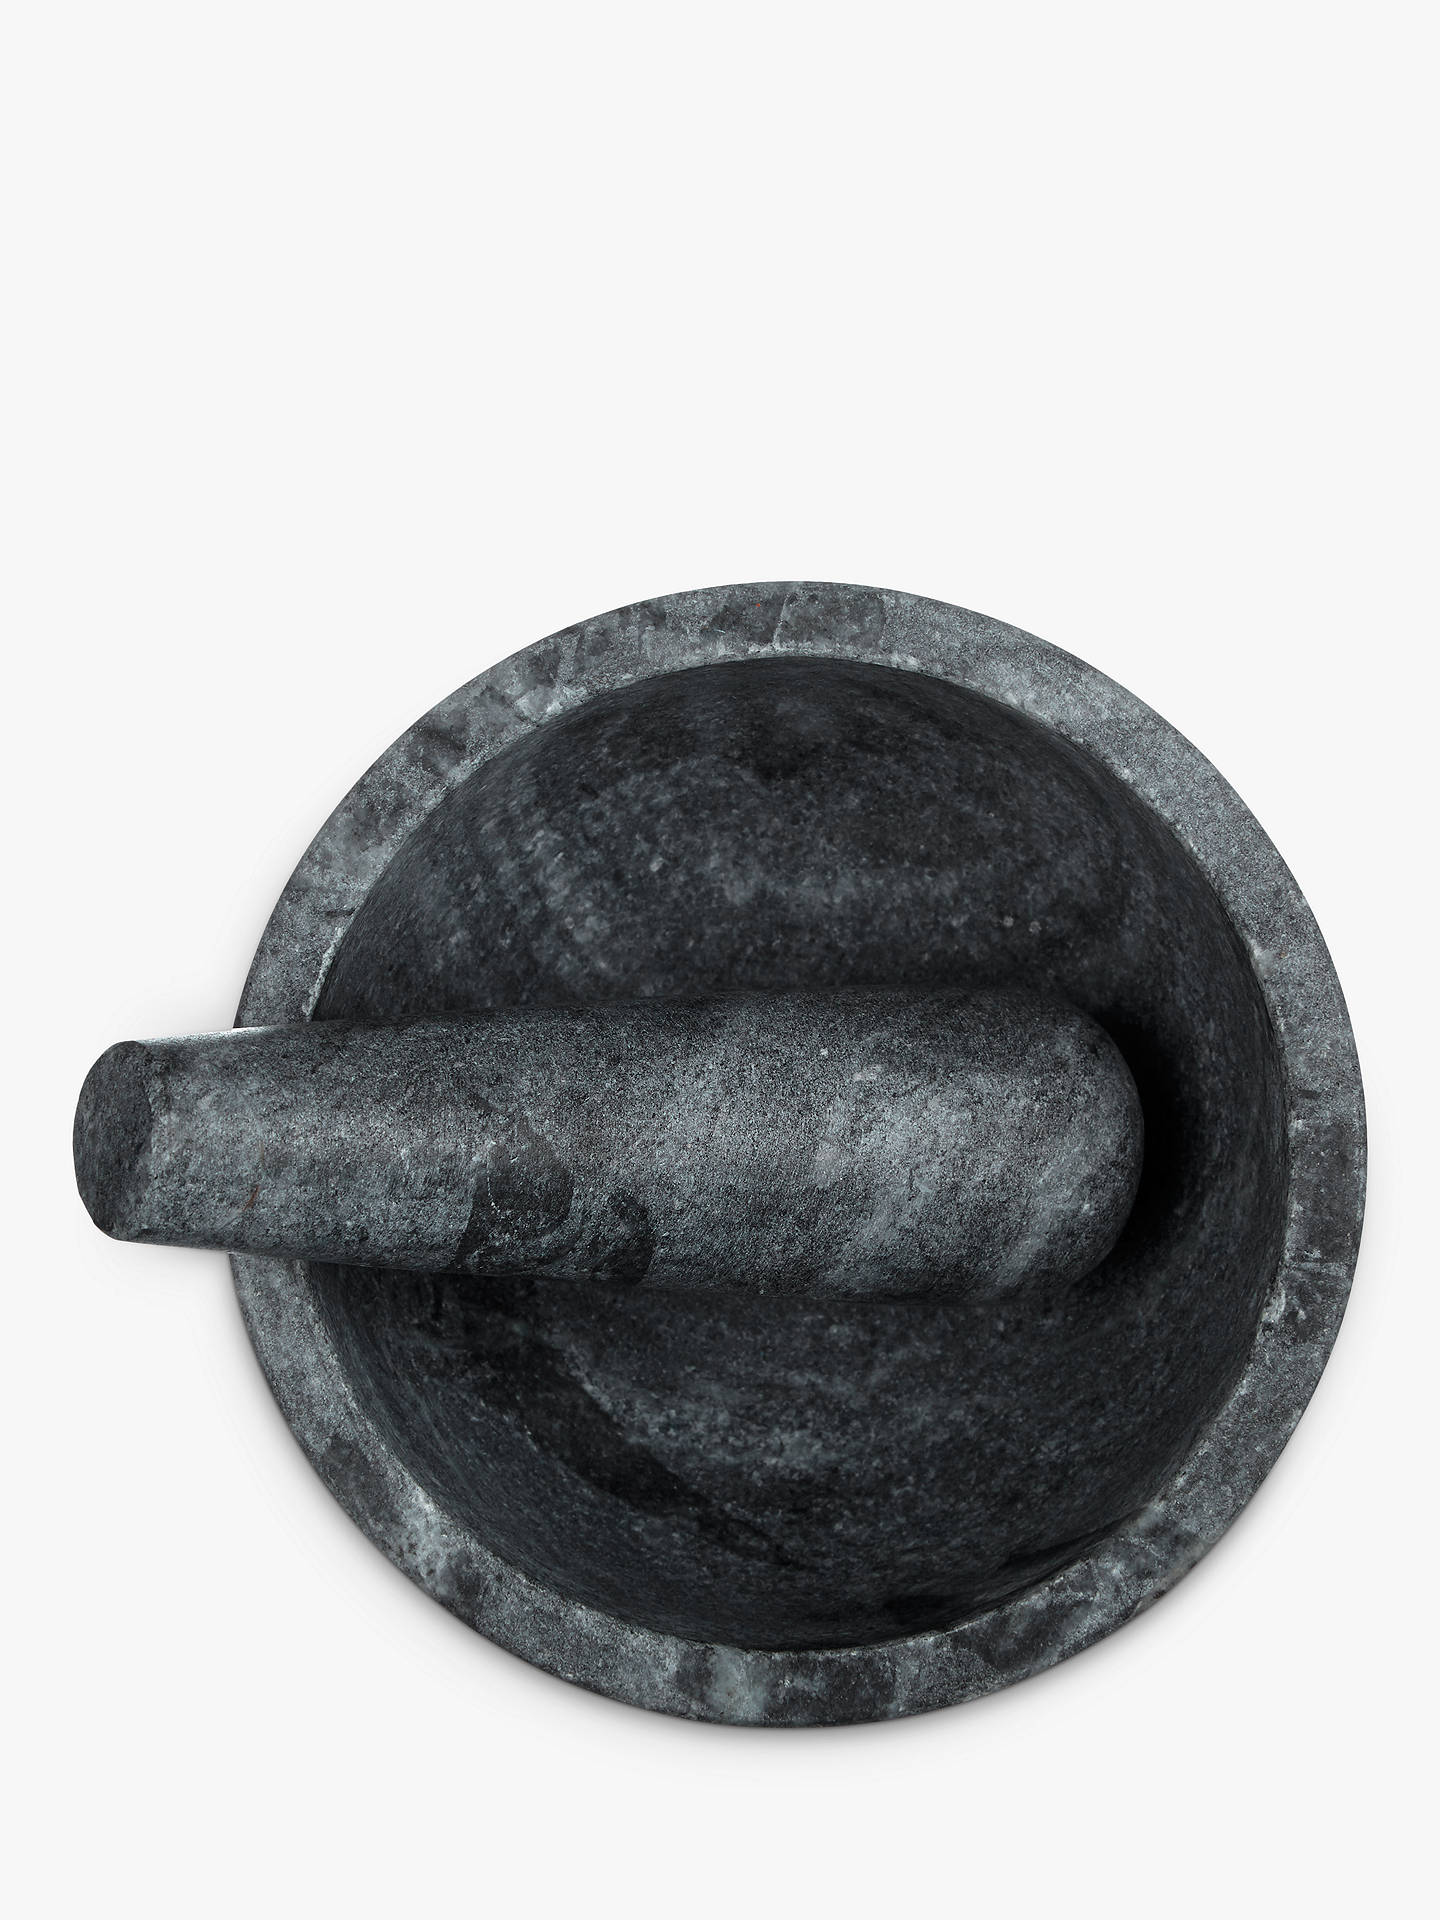 BuyJohn Lewis & Partners Honed Grey Marble Pestle and Mortar Online at johnlewis.com